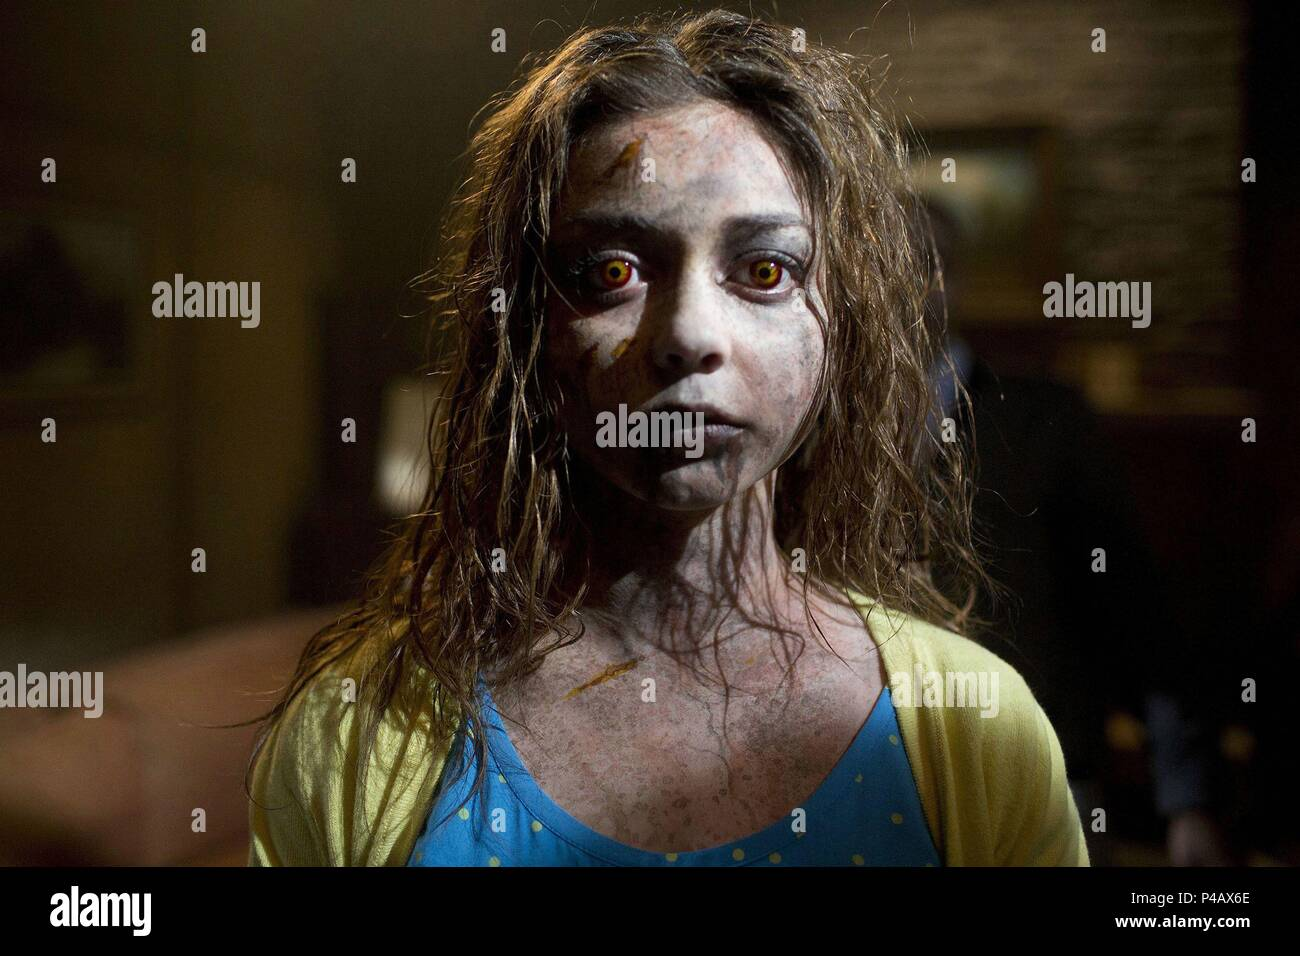 Original Film Title Scary Movie 5 English Title Scary Movie 5 Film Director Malcolm D Lee Year 2013 Stars Sarah Hyland Credit Dimension Films Album Stock Photo Alamy